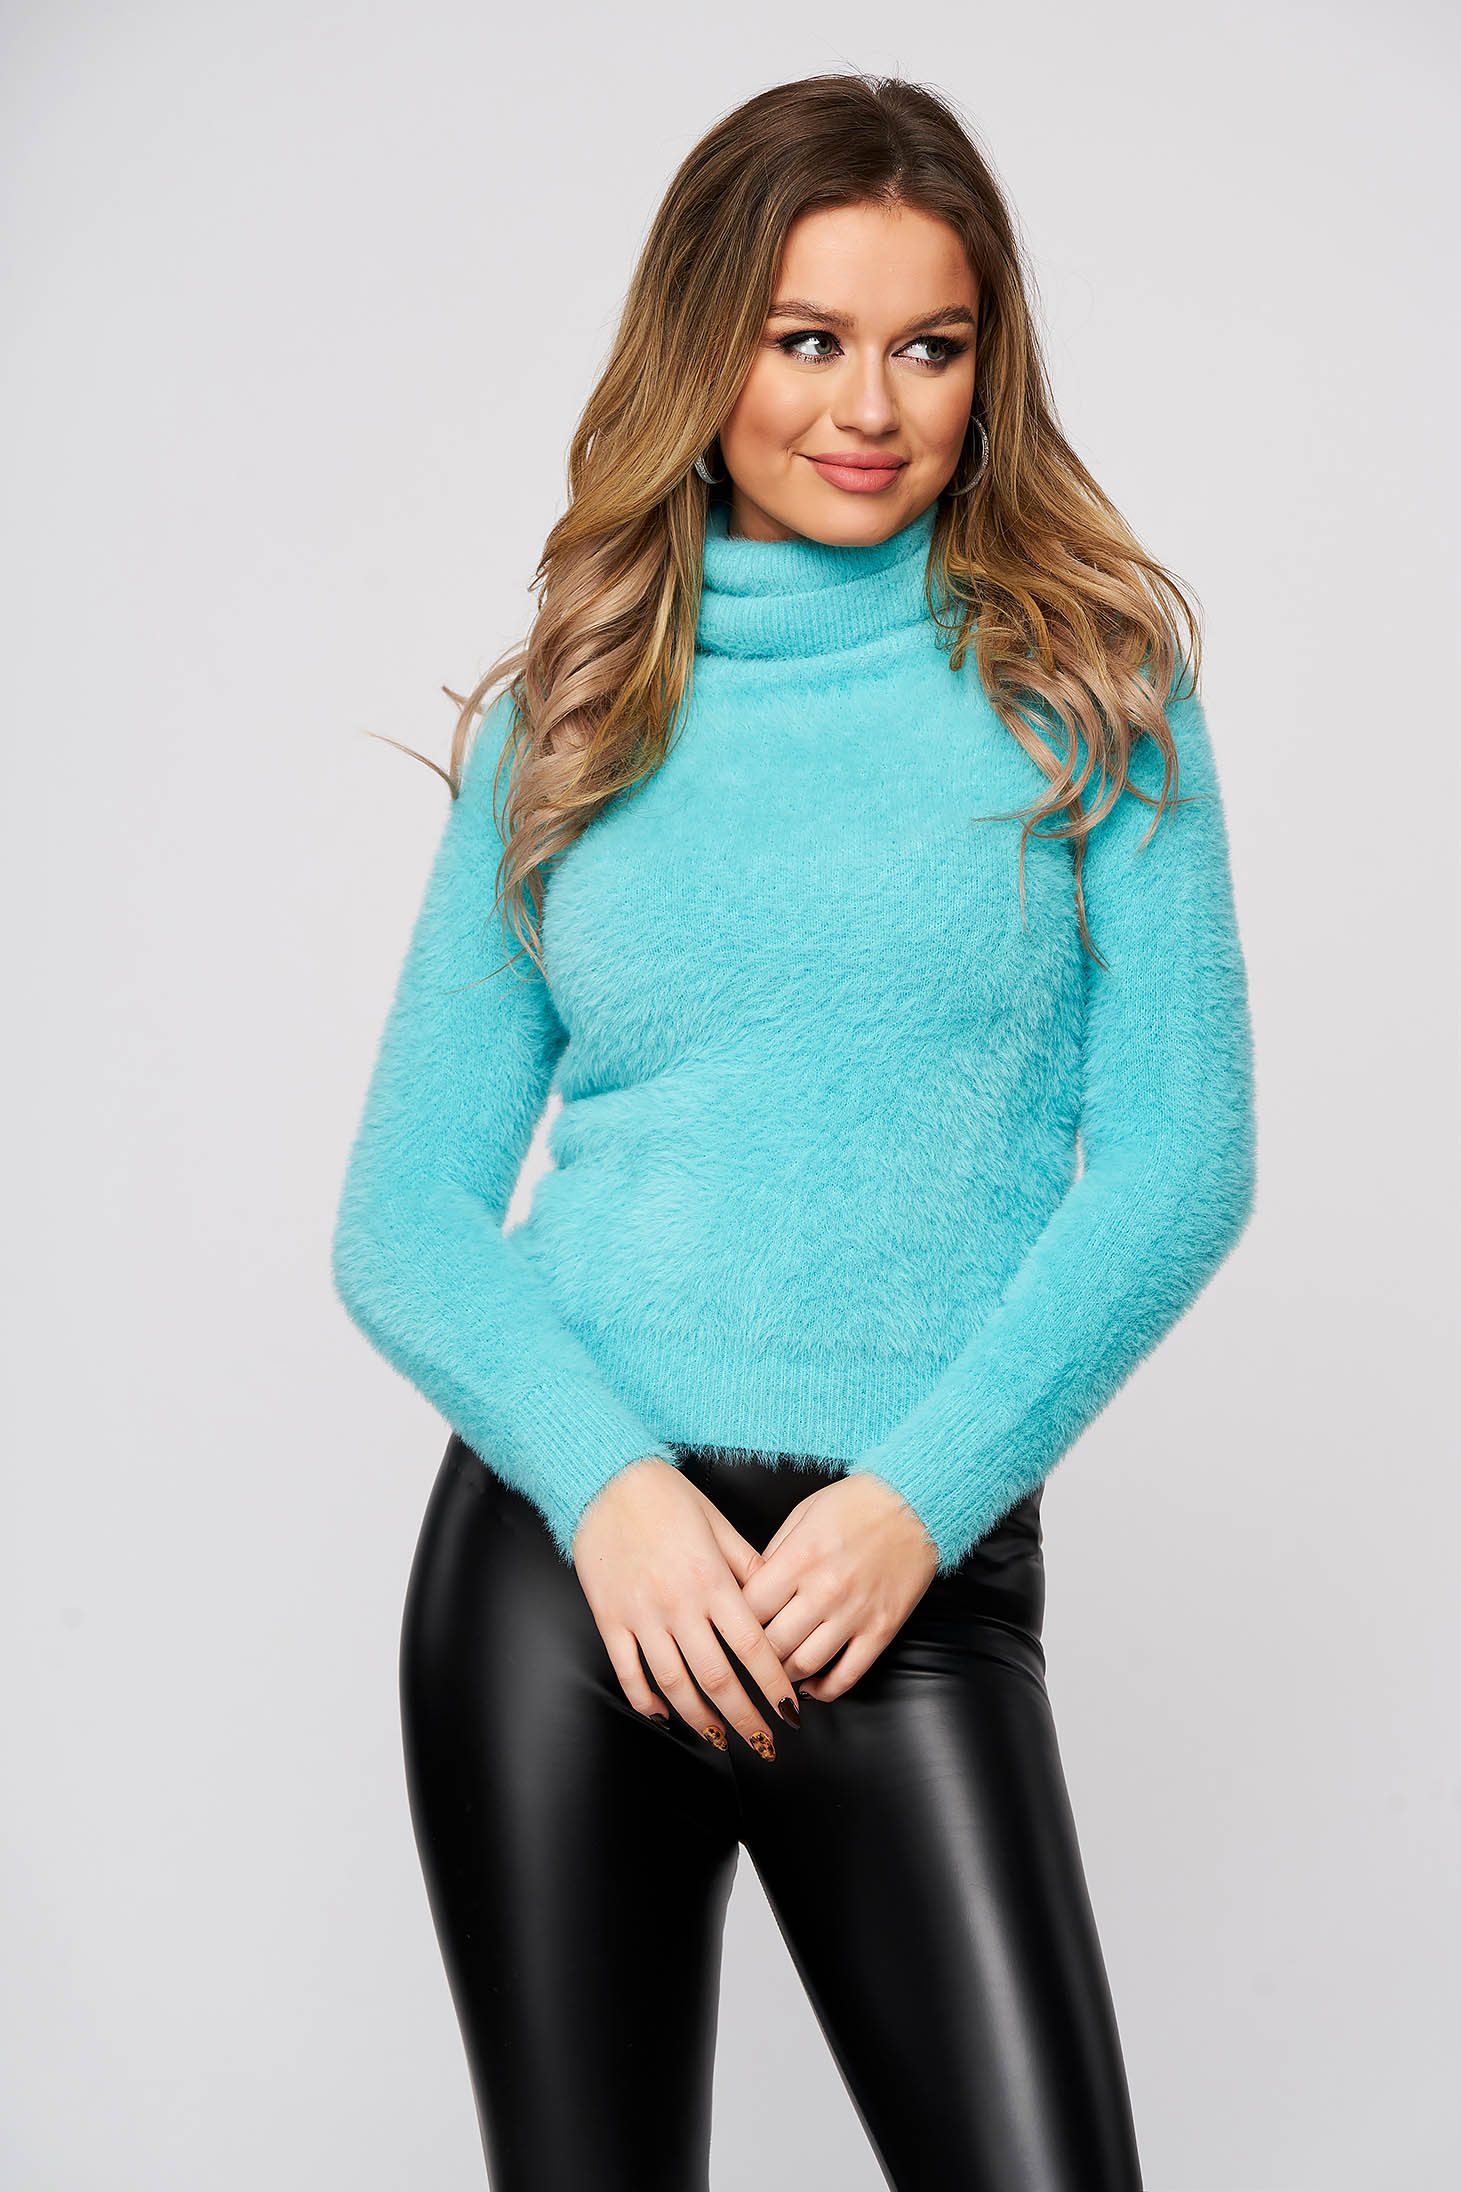 Turquoise sweater polyamide from fluffy fabric from elastic and fine fabric tented